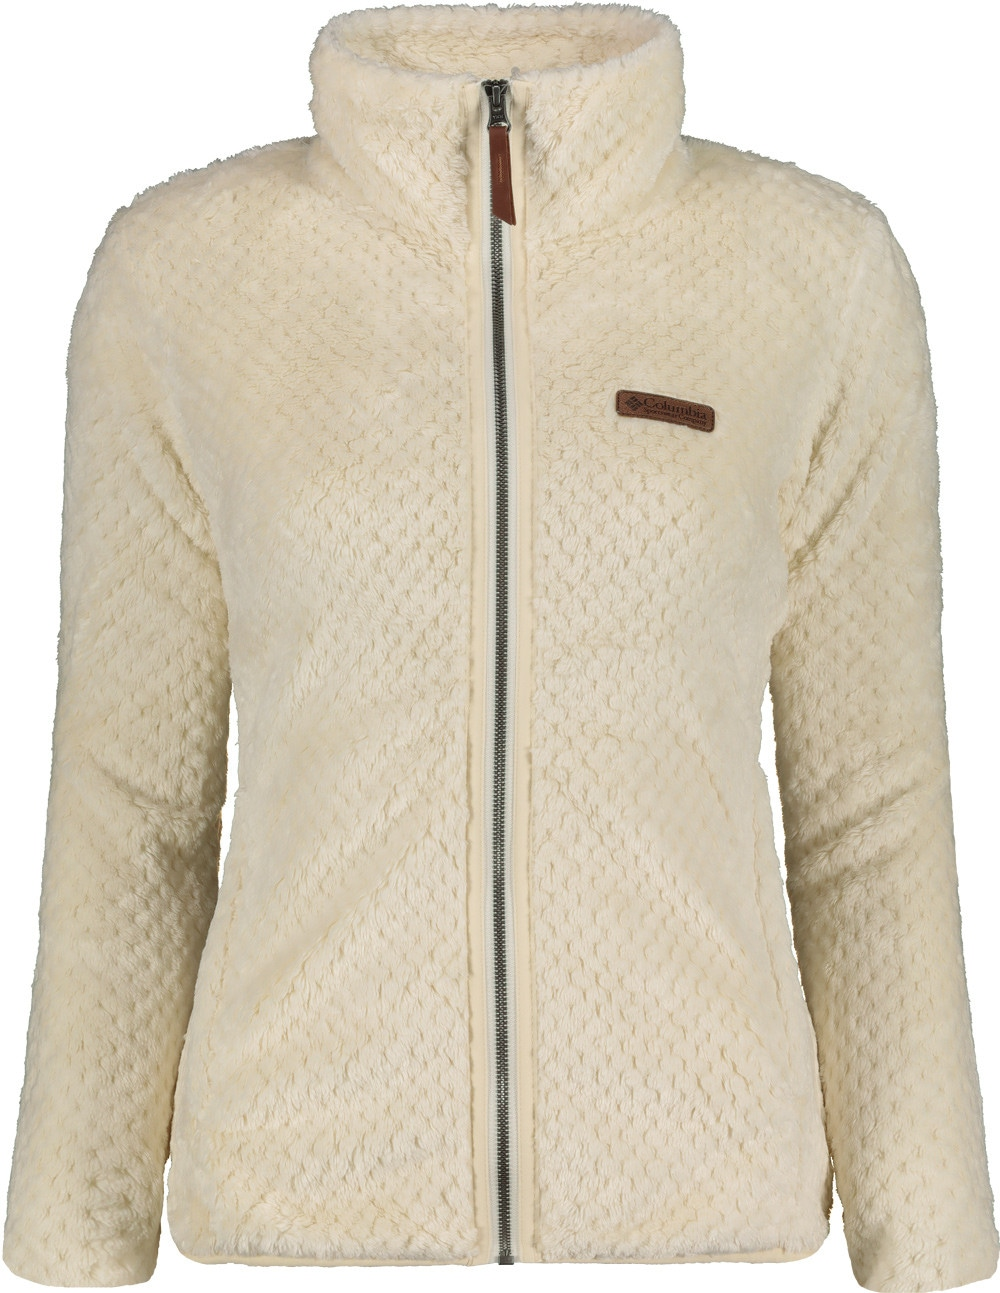 Women's jacket COLUMBIA Fire Side II Sherpa